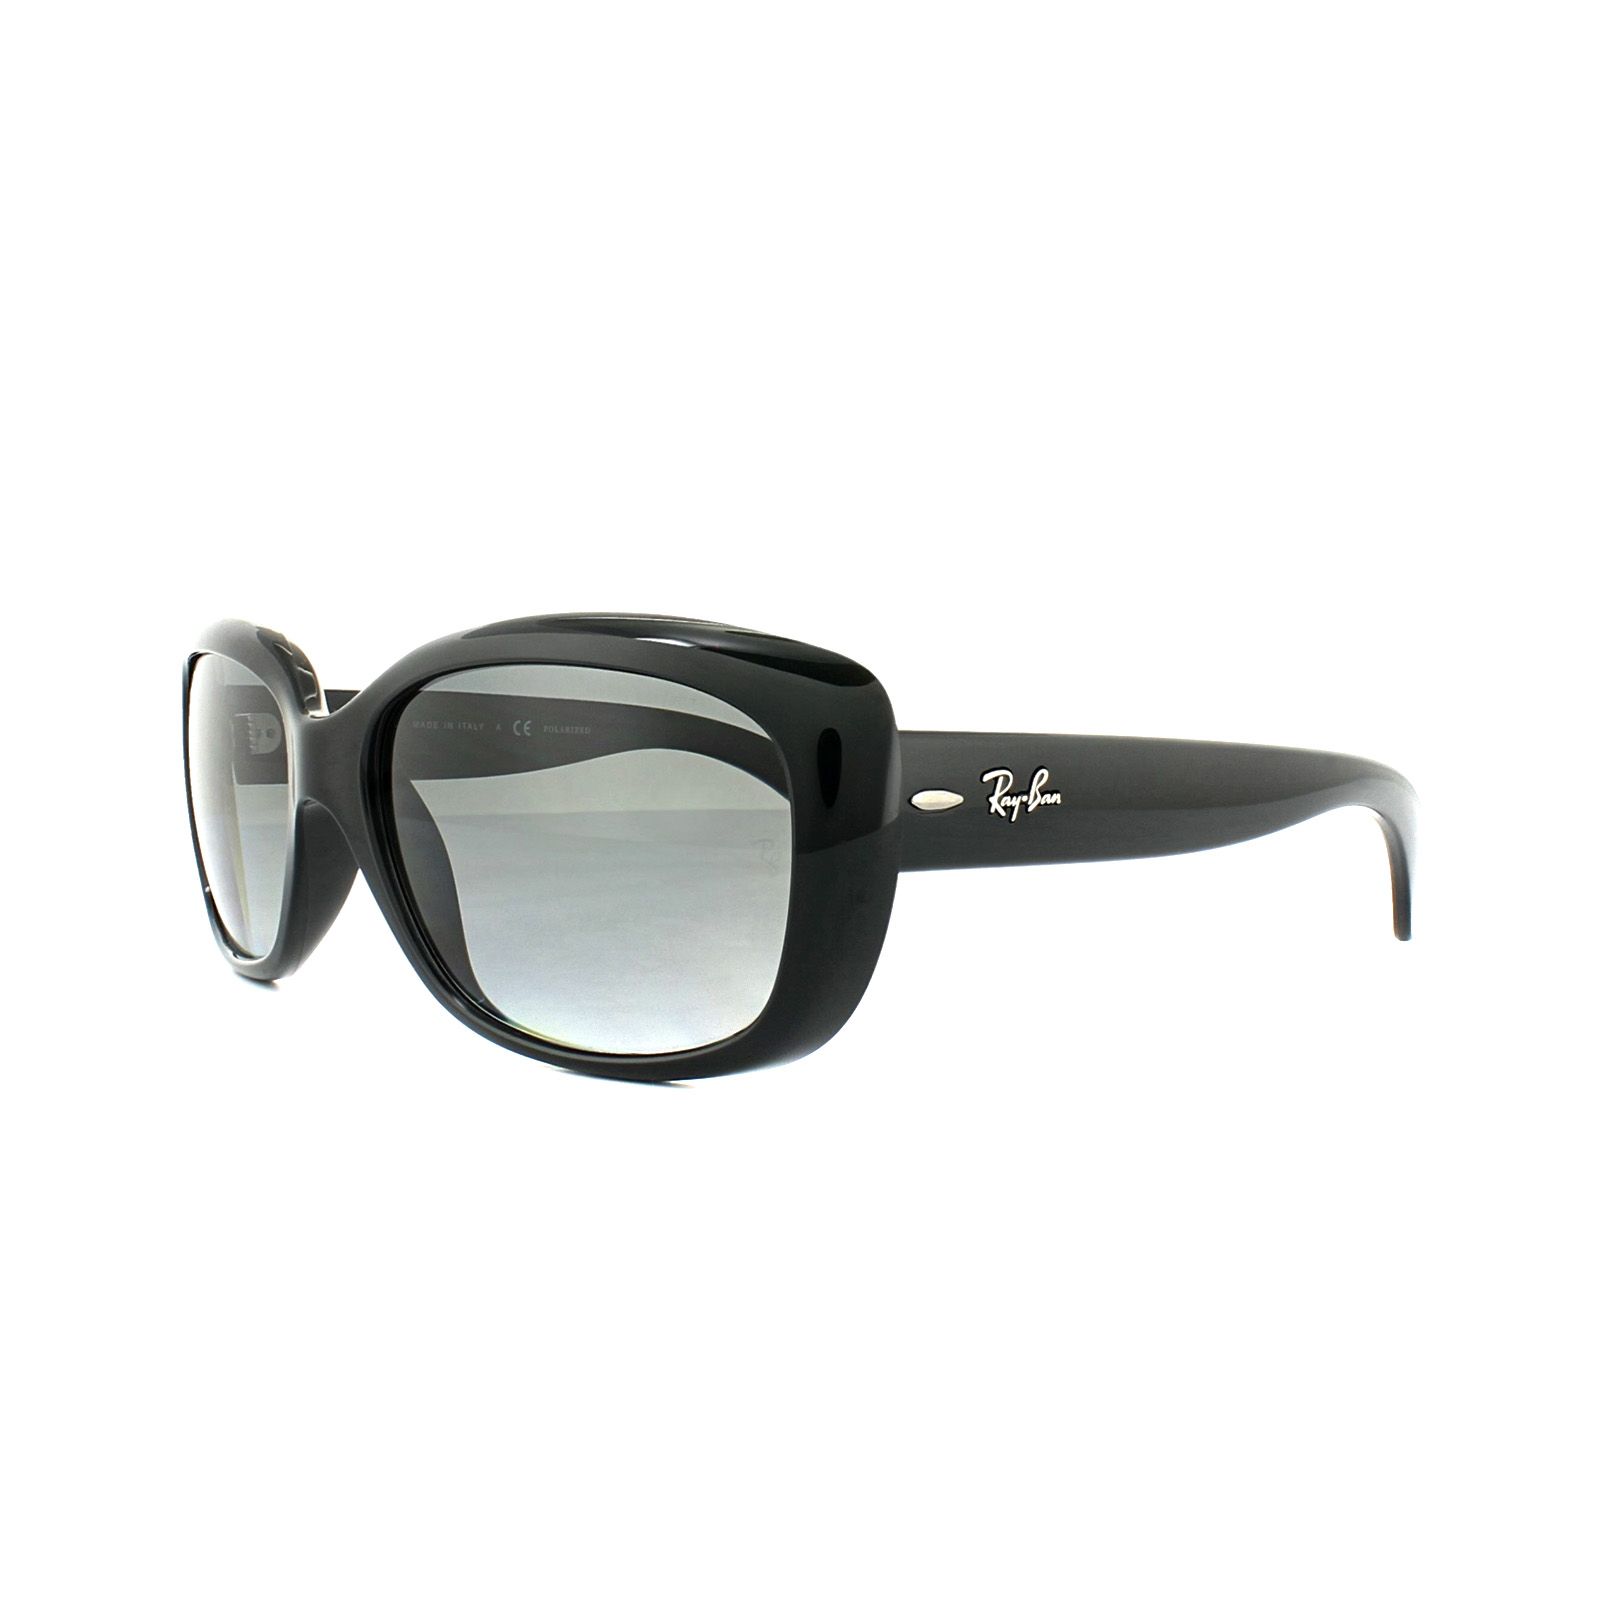 87583f13e30 Details about Ray-Ban Sunglasses Jackie Ohh 4101 601 T3 Shiny Black Grey  Gradient Polarized